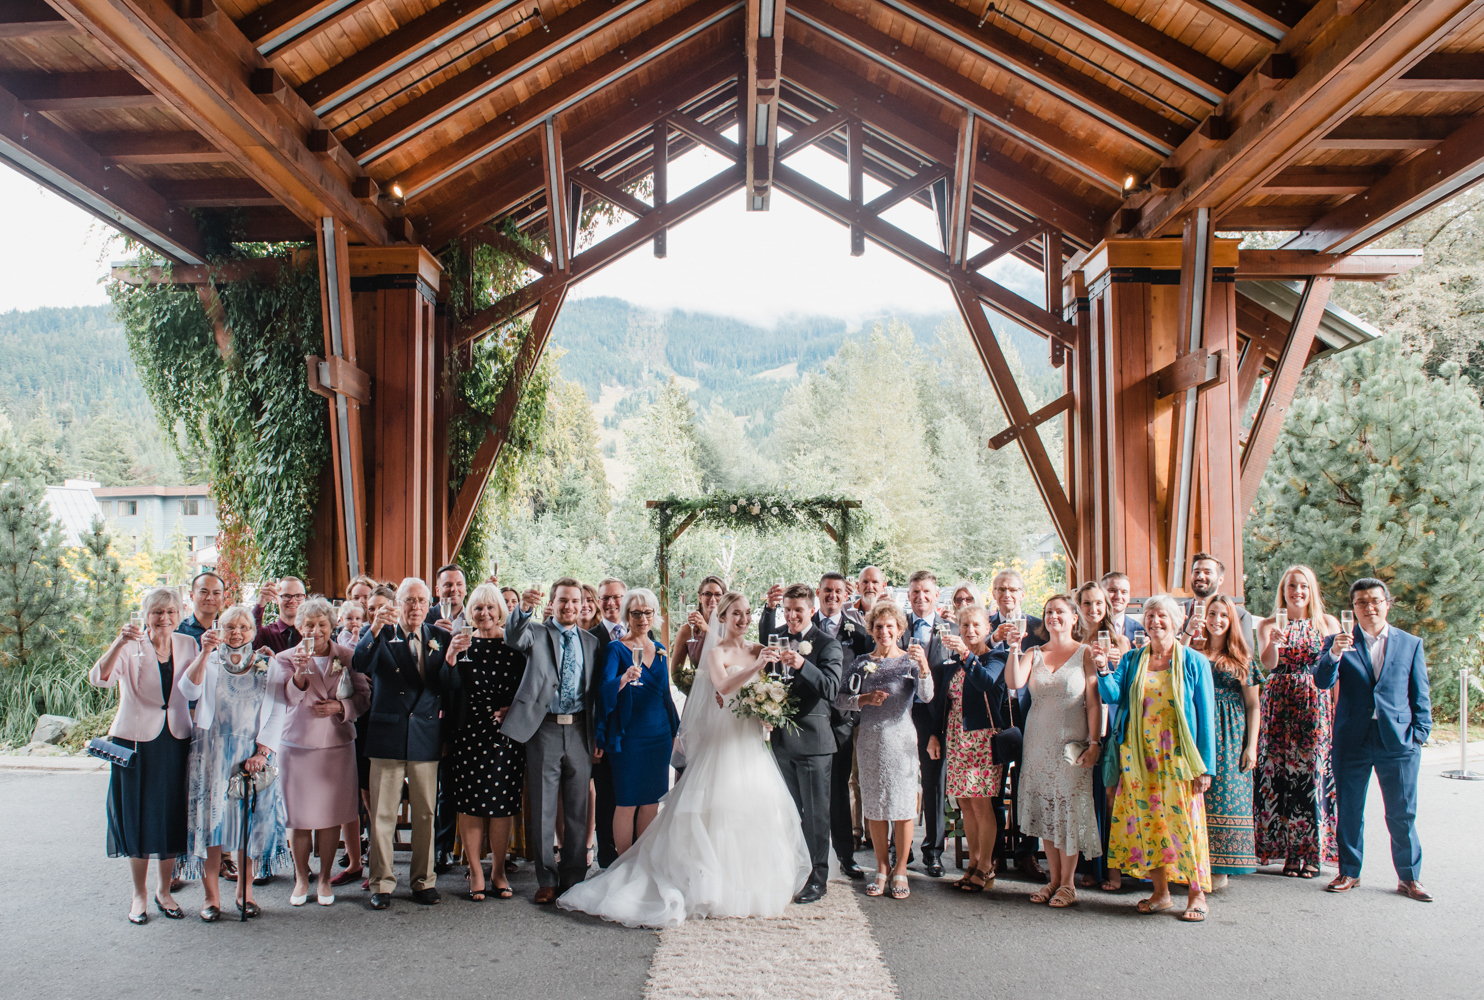 Nitalake wedding70.jpg